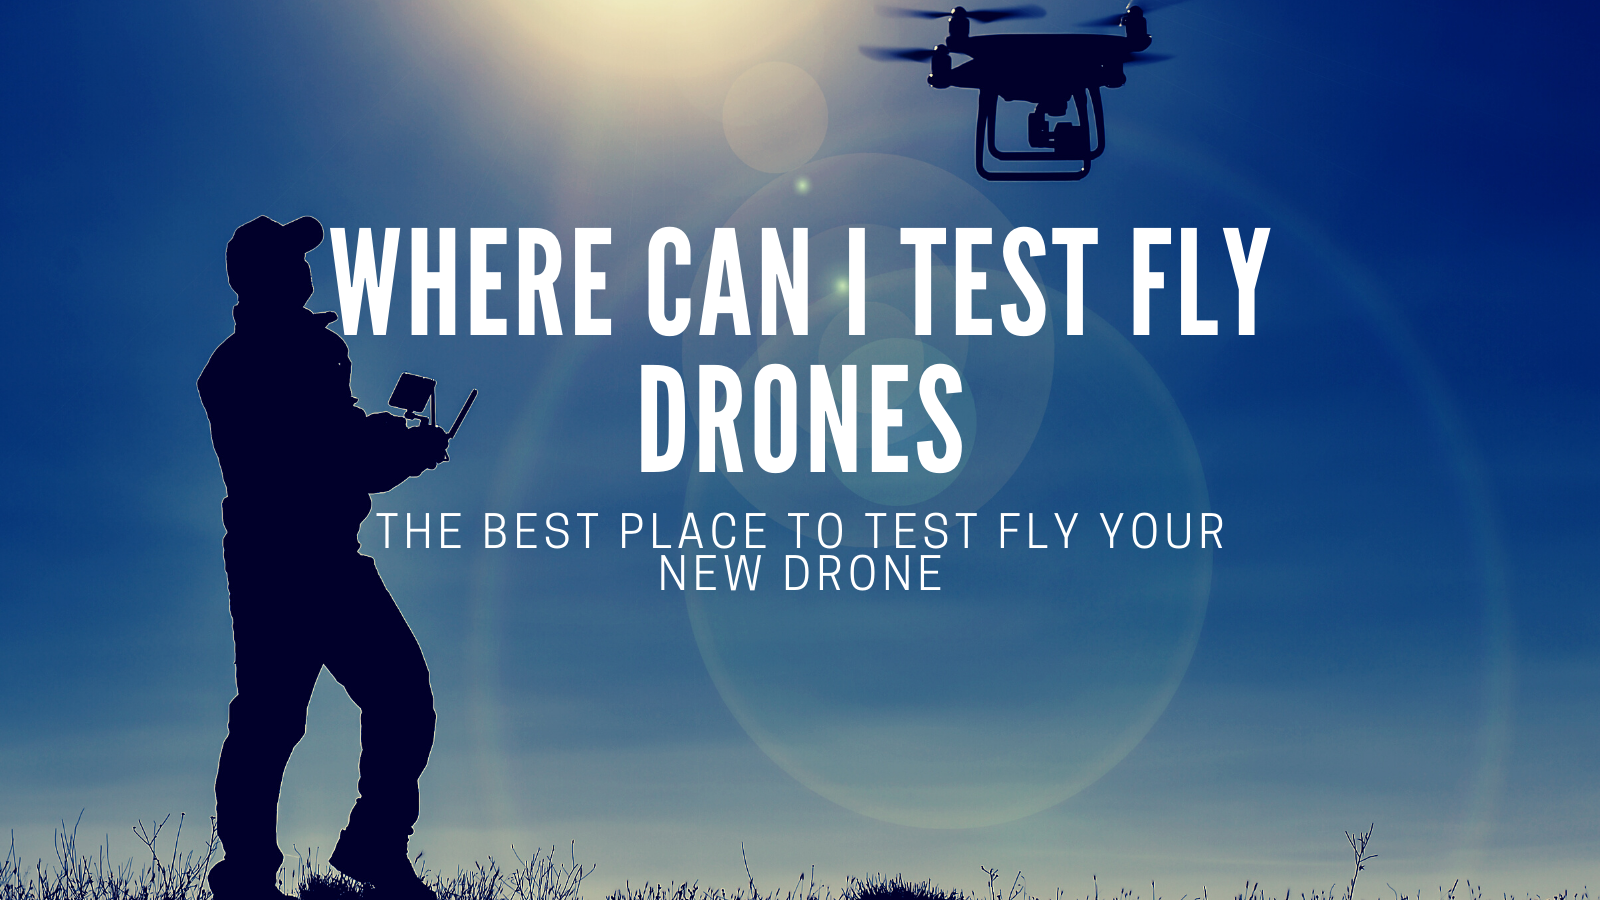 Where Can I Test Fly Drones?